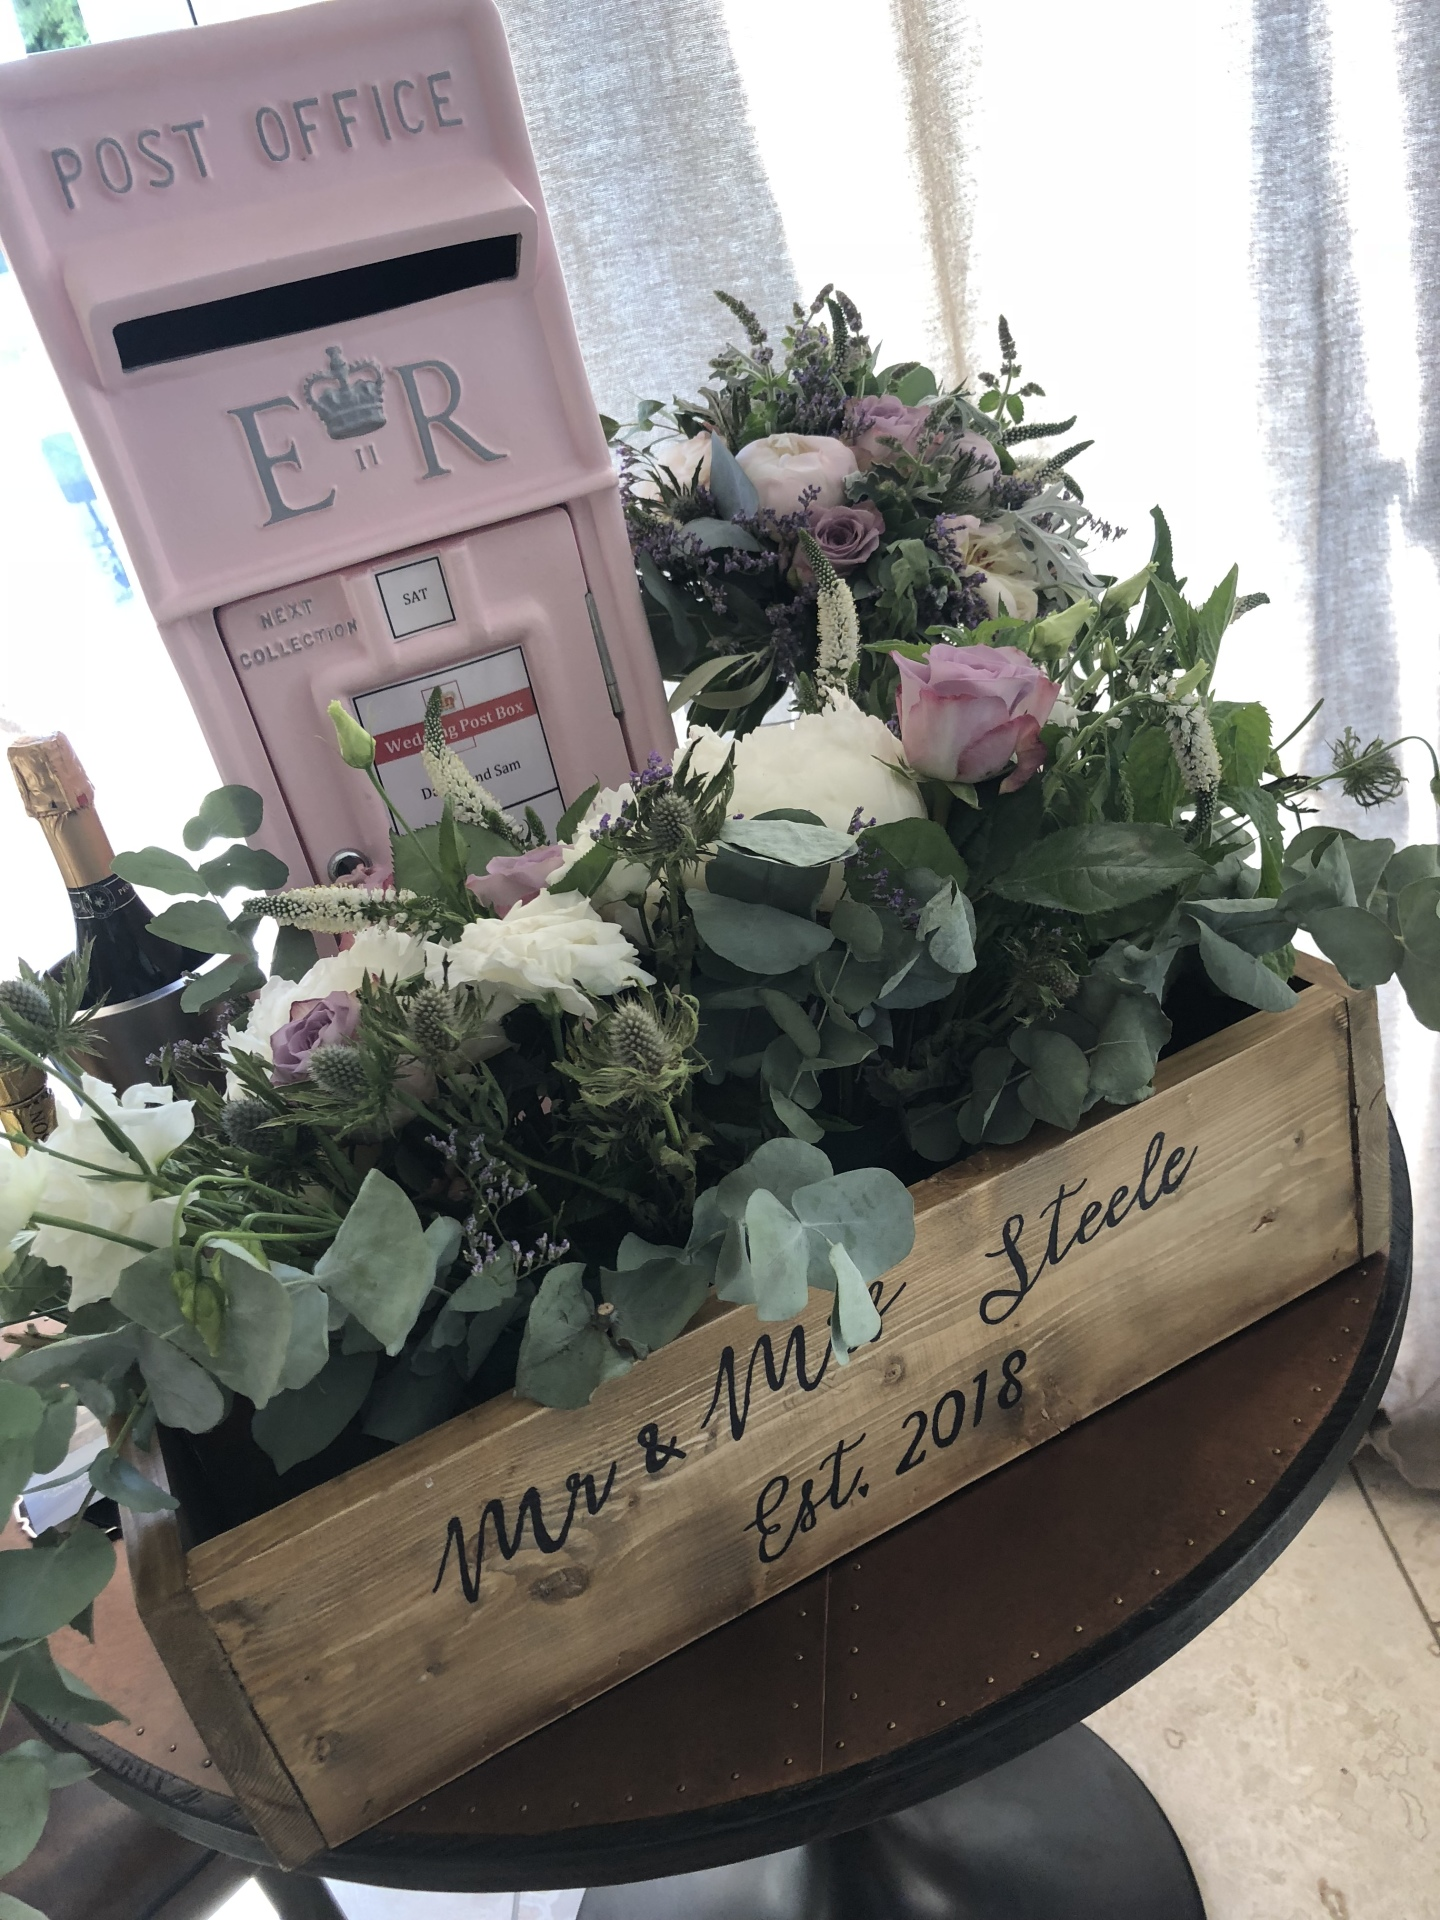 Pastel Pink Royal Mail Wedding post box surrounded by flowers